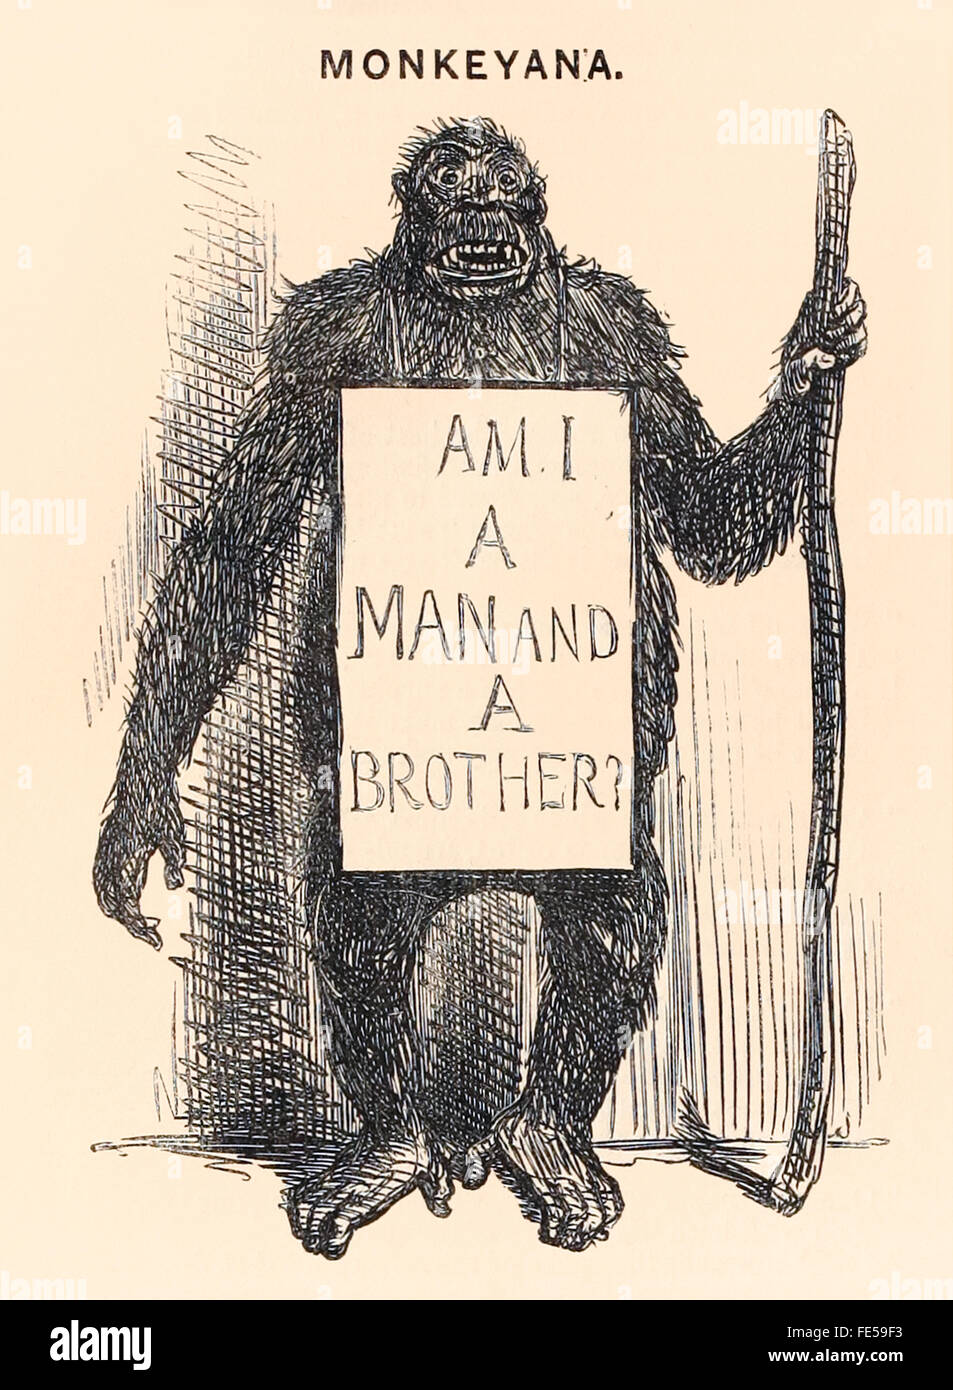 'Am I a man and a brother?' a begging ape's placard reads in this cartoon 'Monkeyana' published - Stock Image